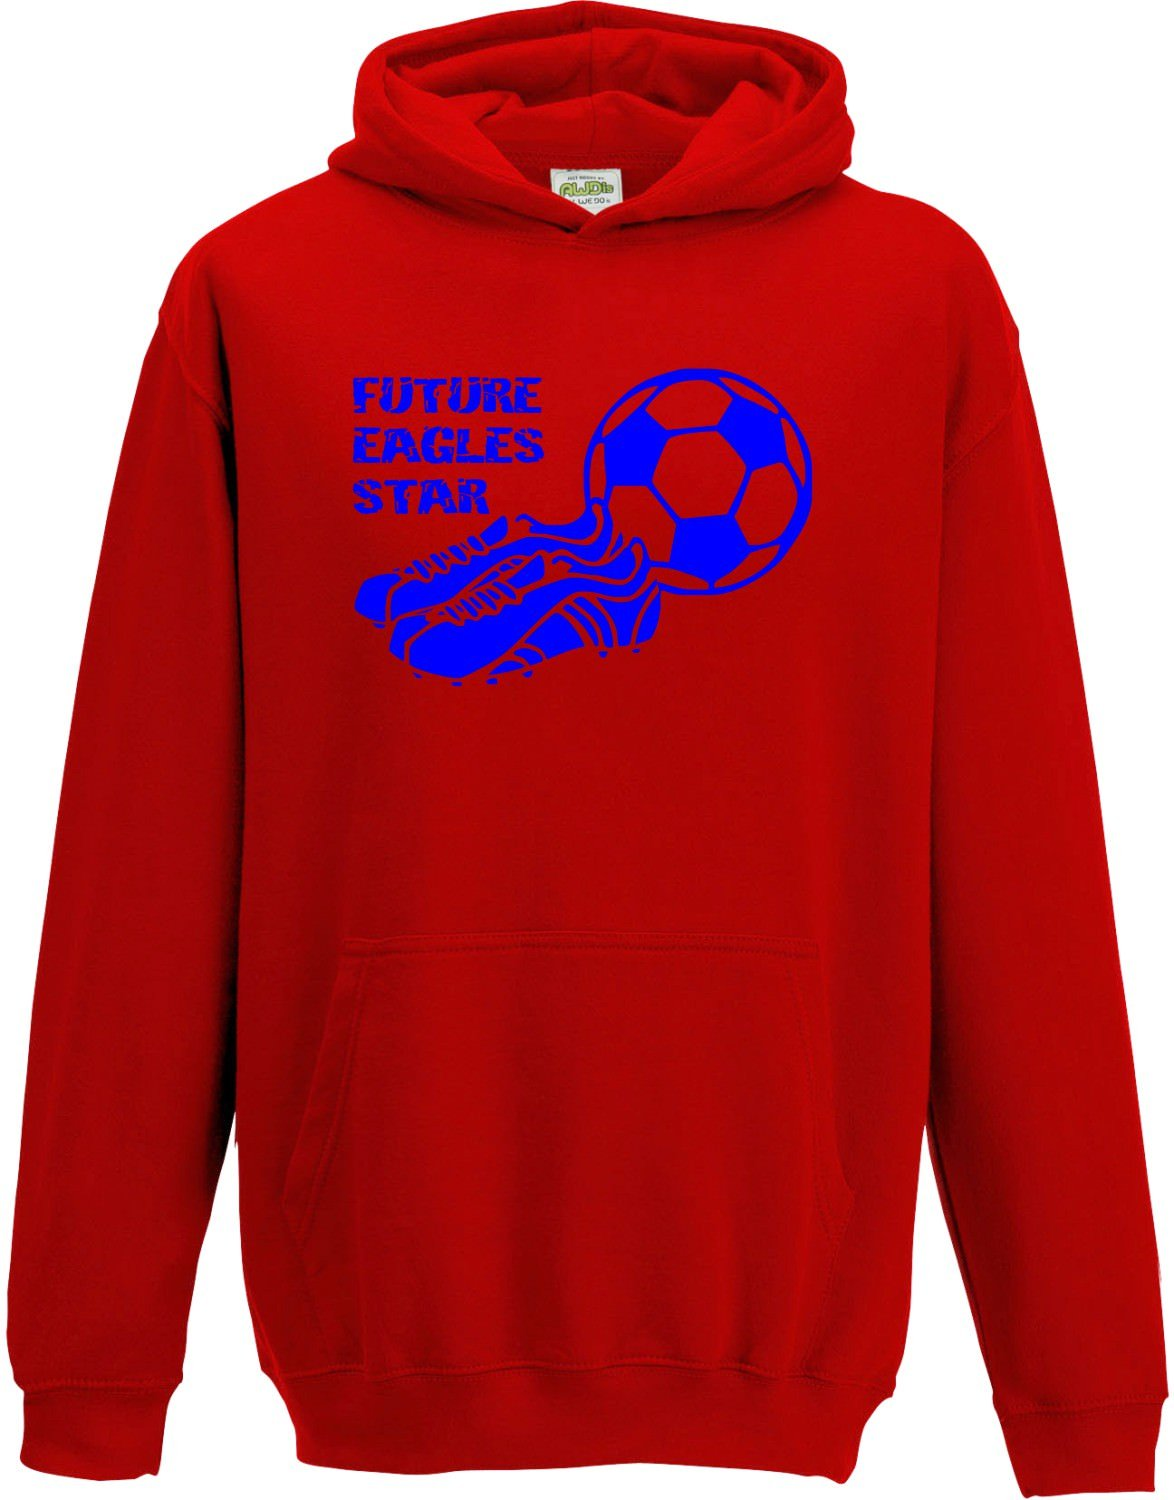 Hat-Trick Designs Crystal Palace Football Baby/Kids/Childrens Hoodie Sweatshirt-Red-Future Star-Unisex Gift